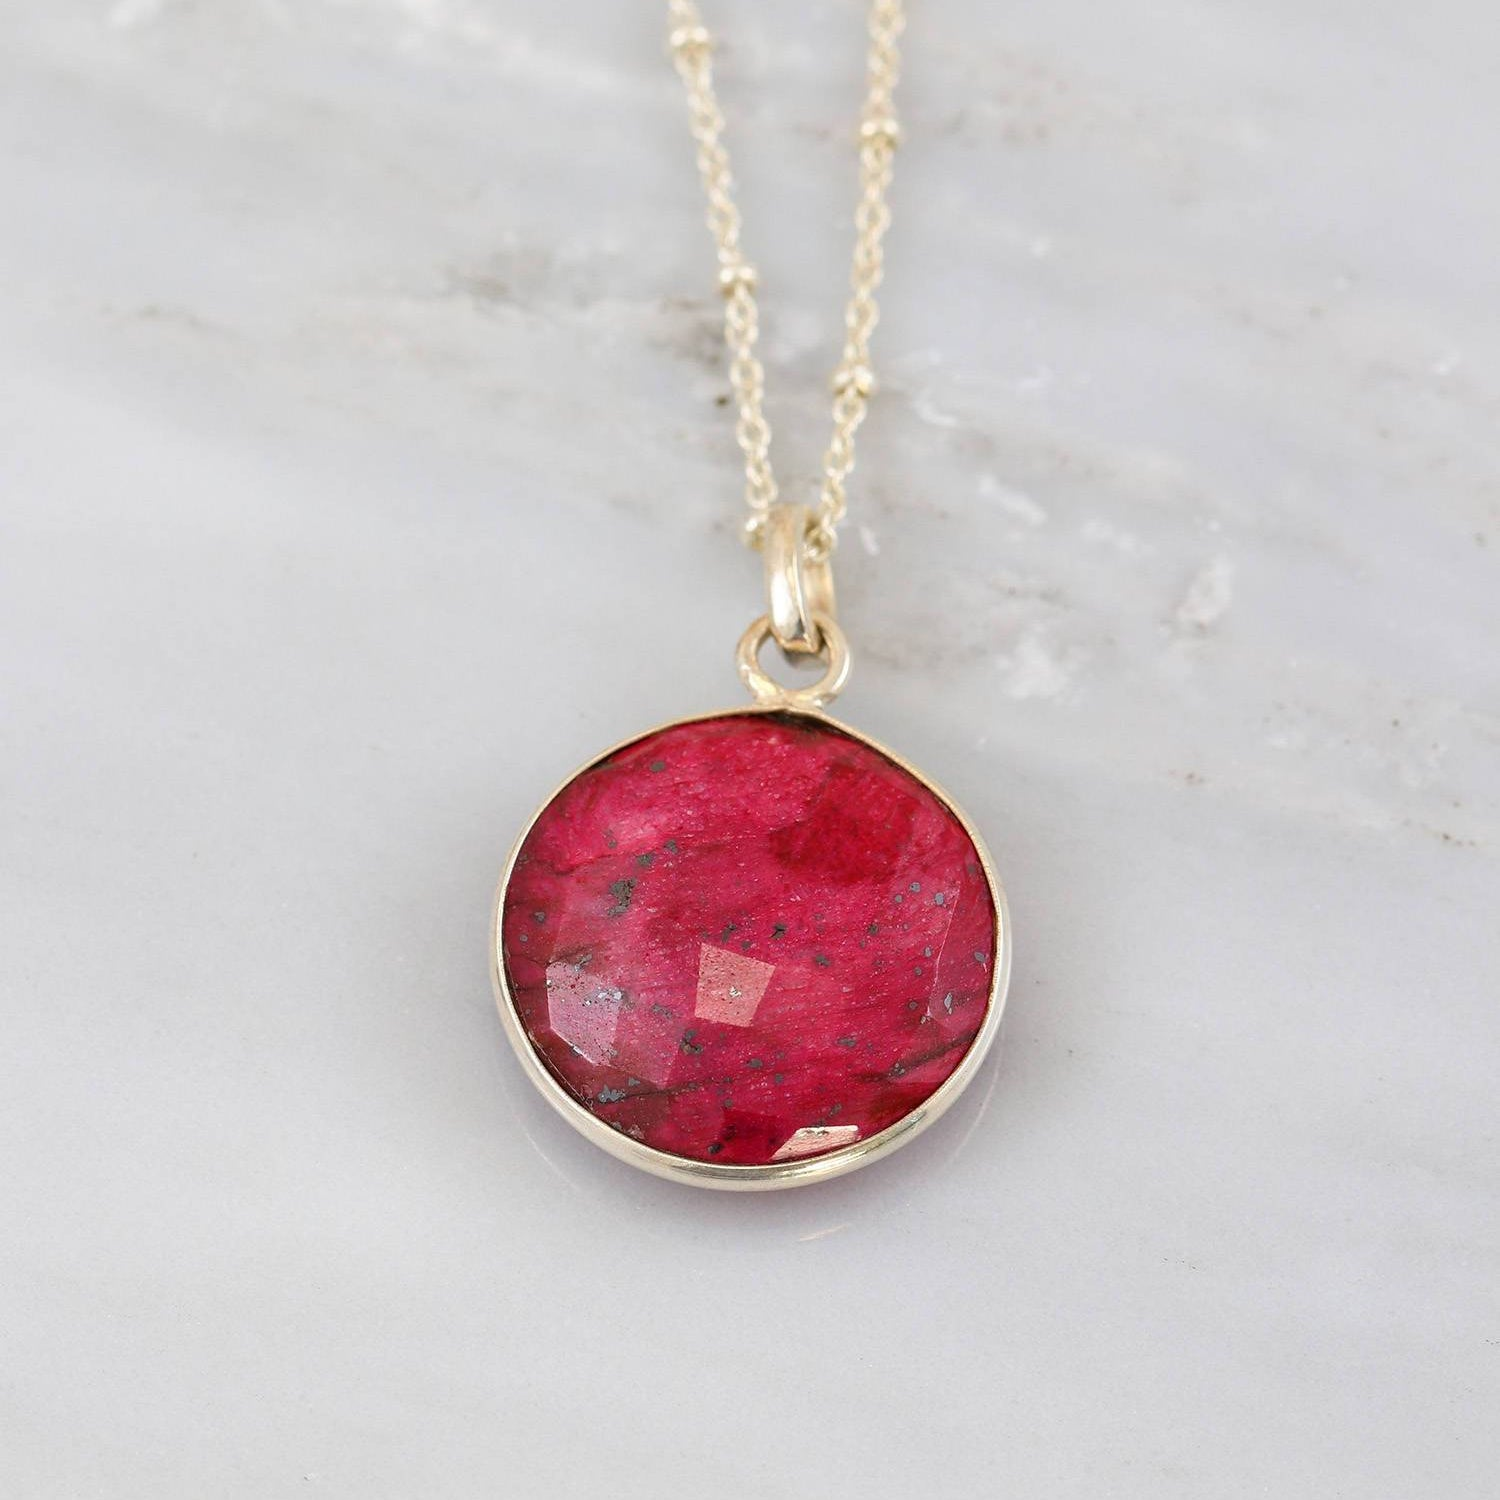 Ruby Necklace, Dyed Ruby Silver Necklace, Sterling Silver Pendent Necklace, Round Pendent Necklace, Birthstone Necklace, July Birthstone